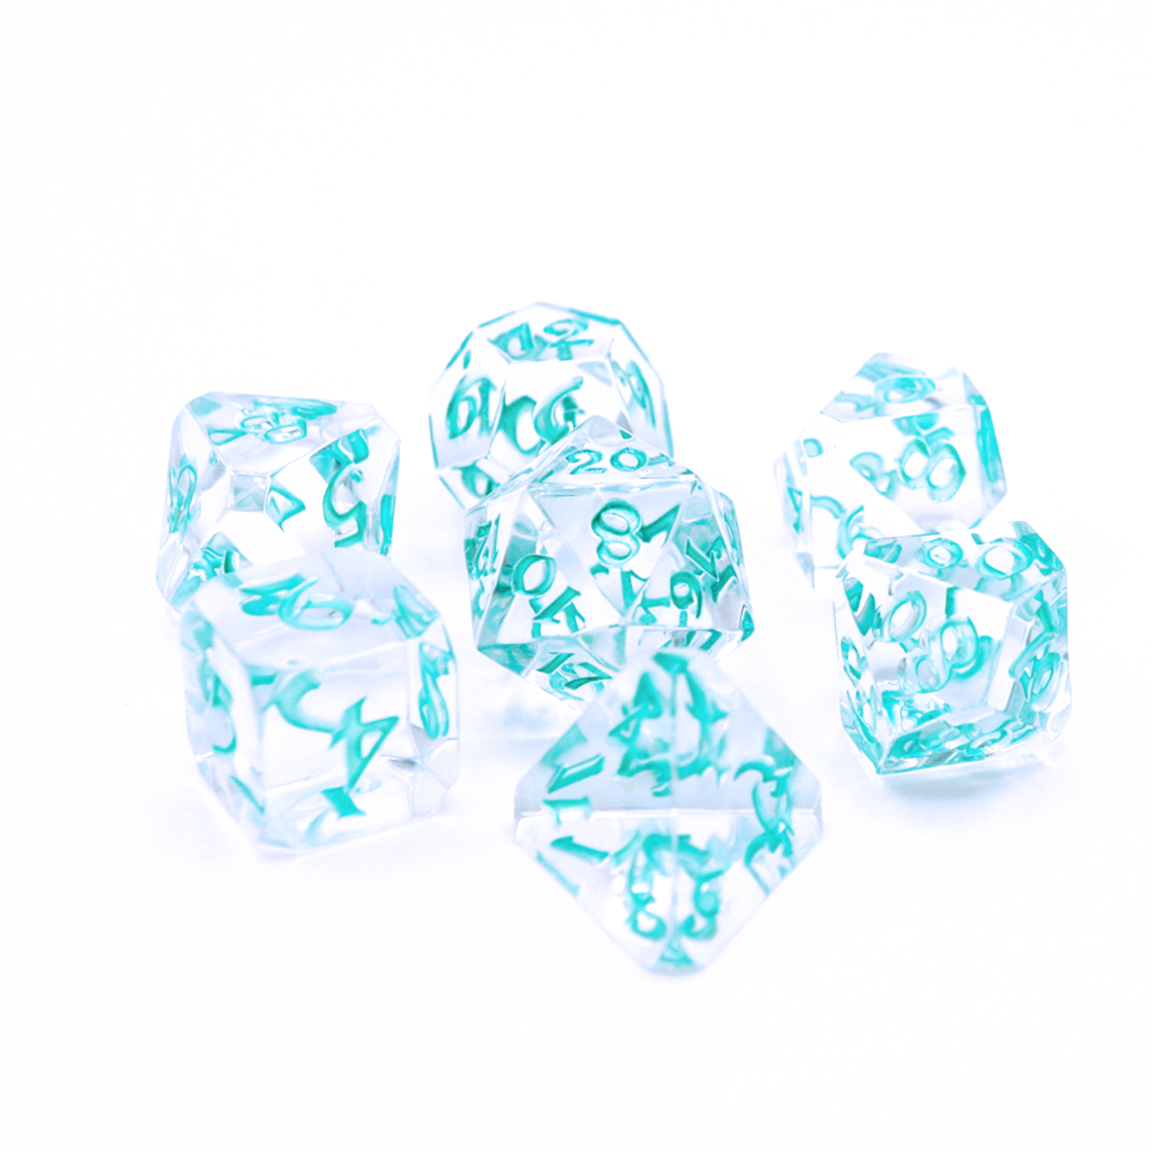 Avalore RPG Set - Isa Restoration - Die Hard Dice | Sunny Pair'O'Dice